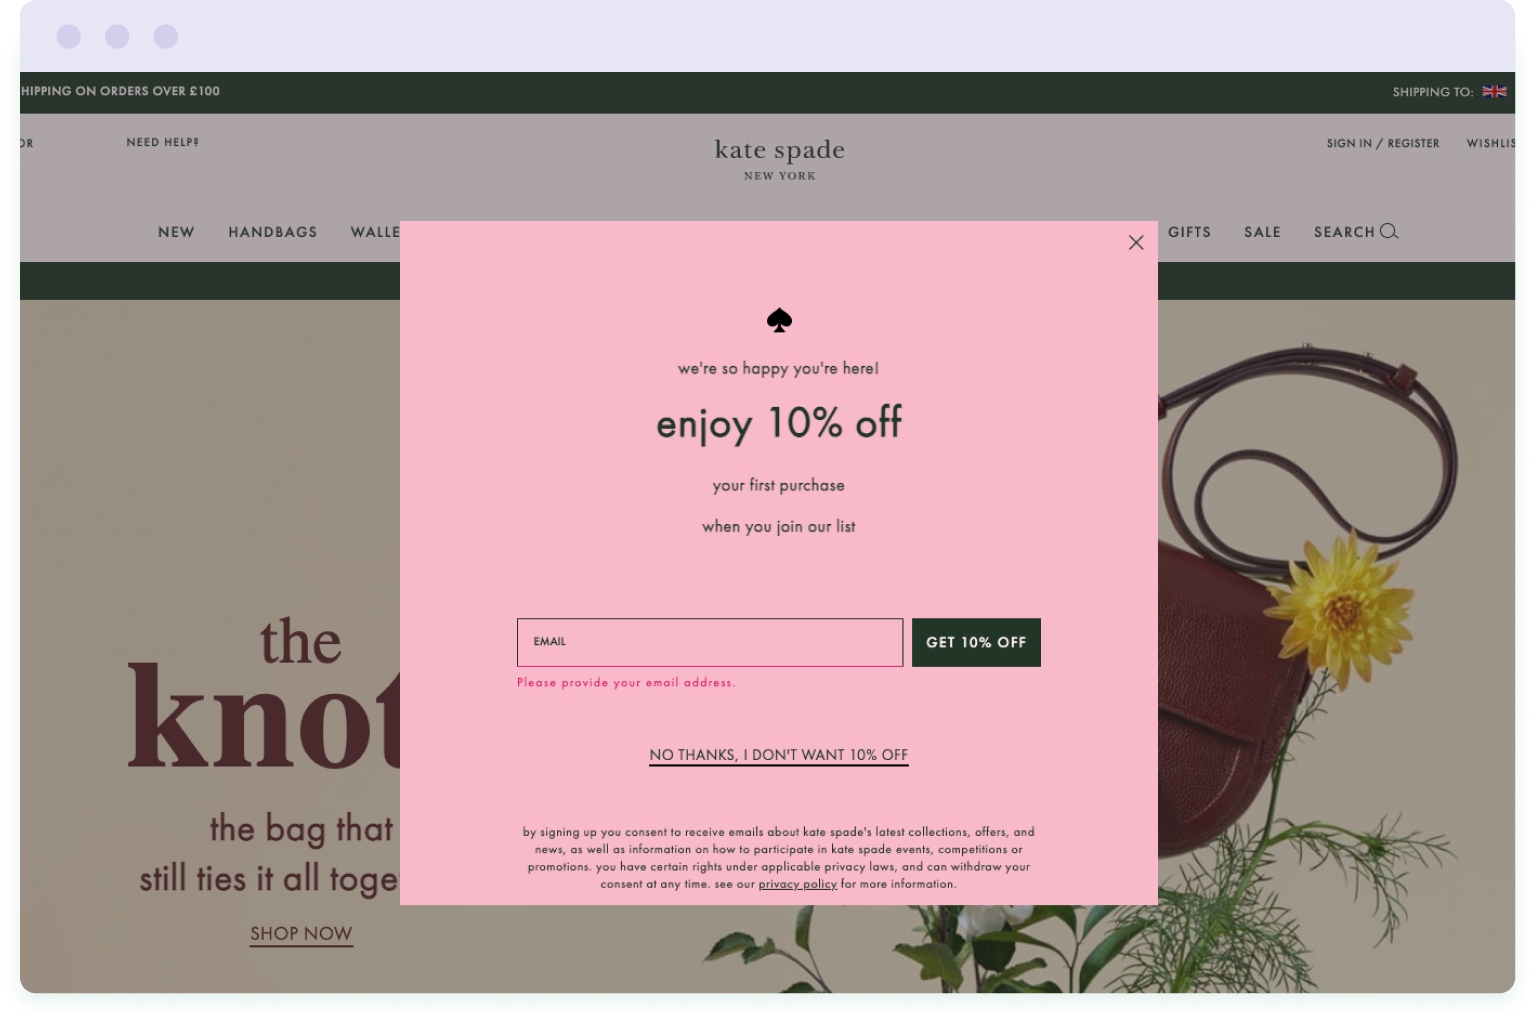 Example of a pop-up form used to grow the email list of retailer Kate Spade